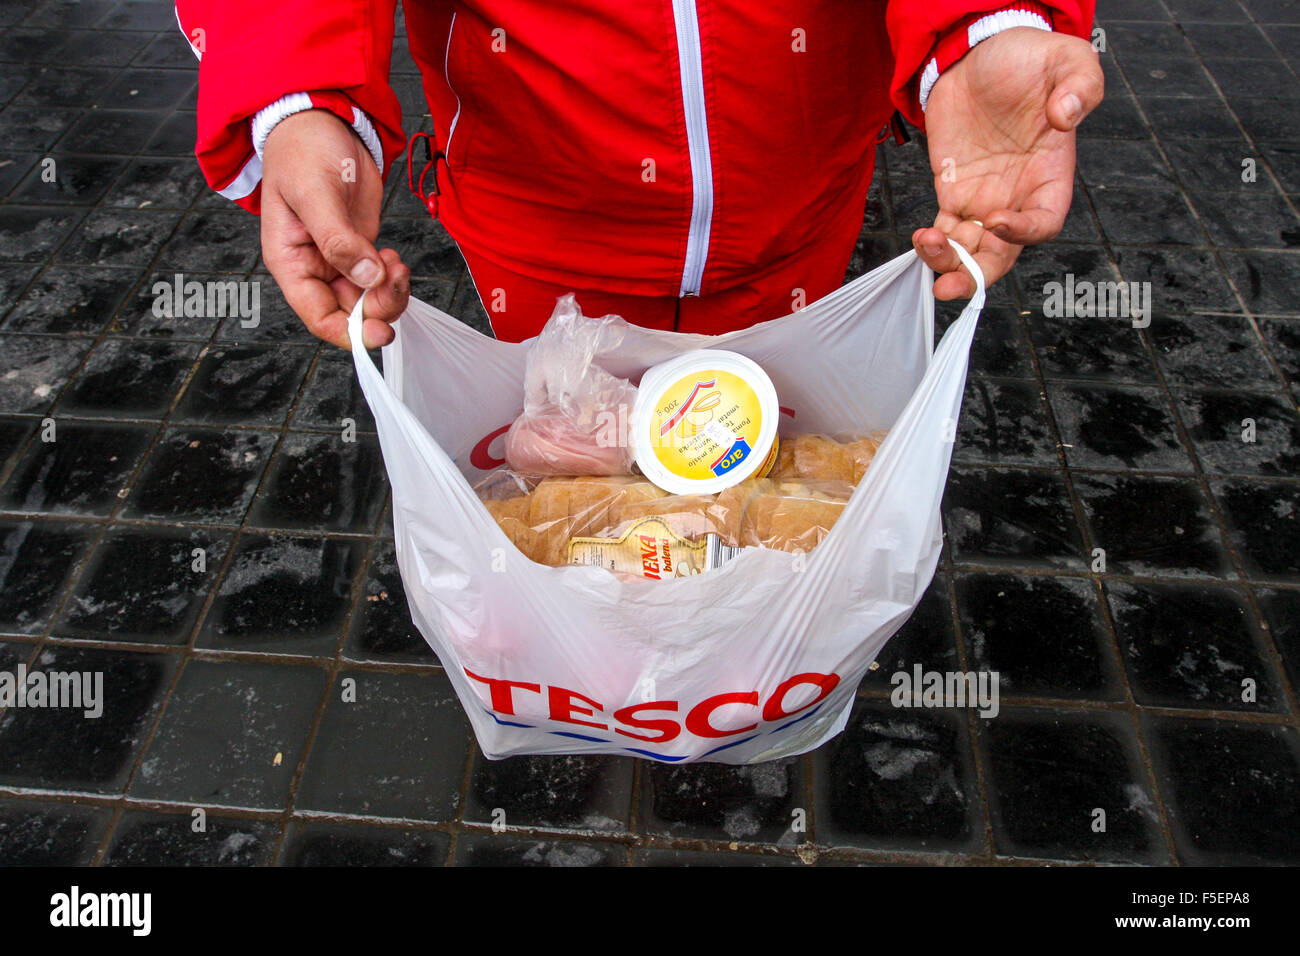 Purchased goods in a plastic bag, Tesco storeStock Photo